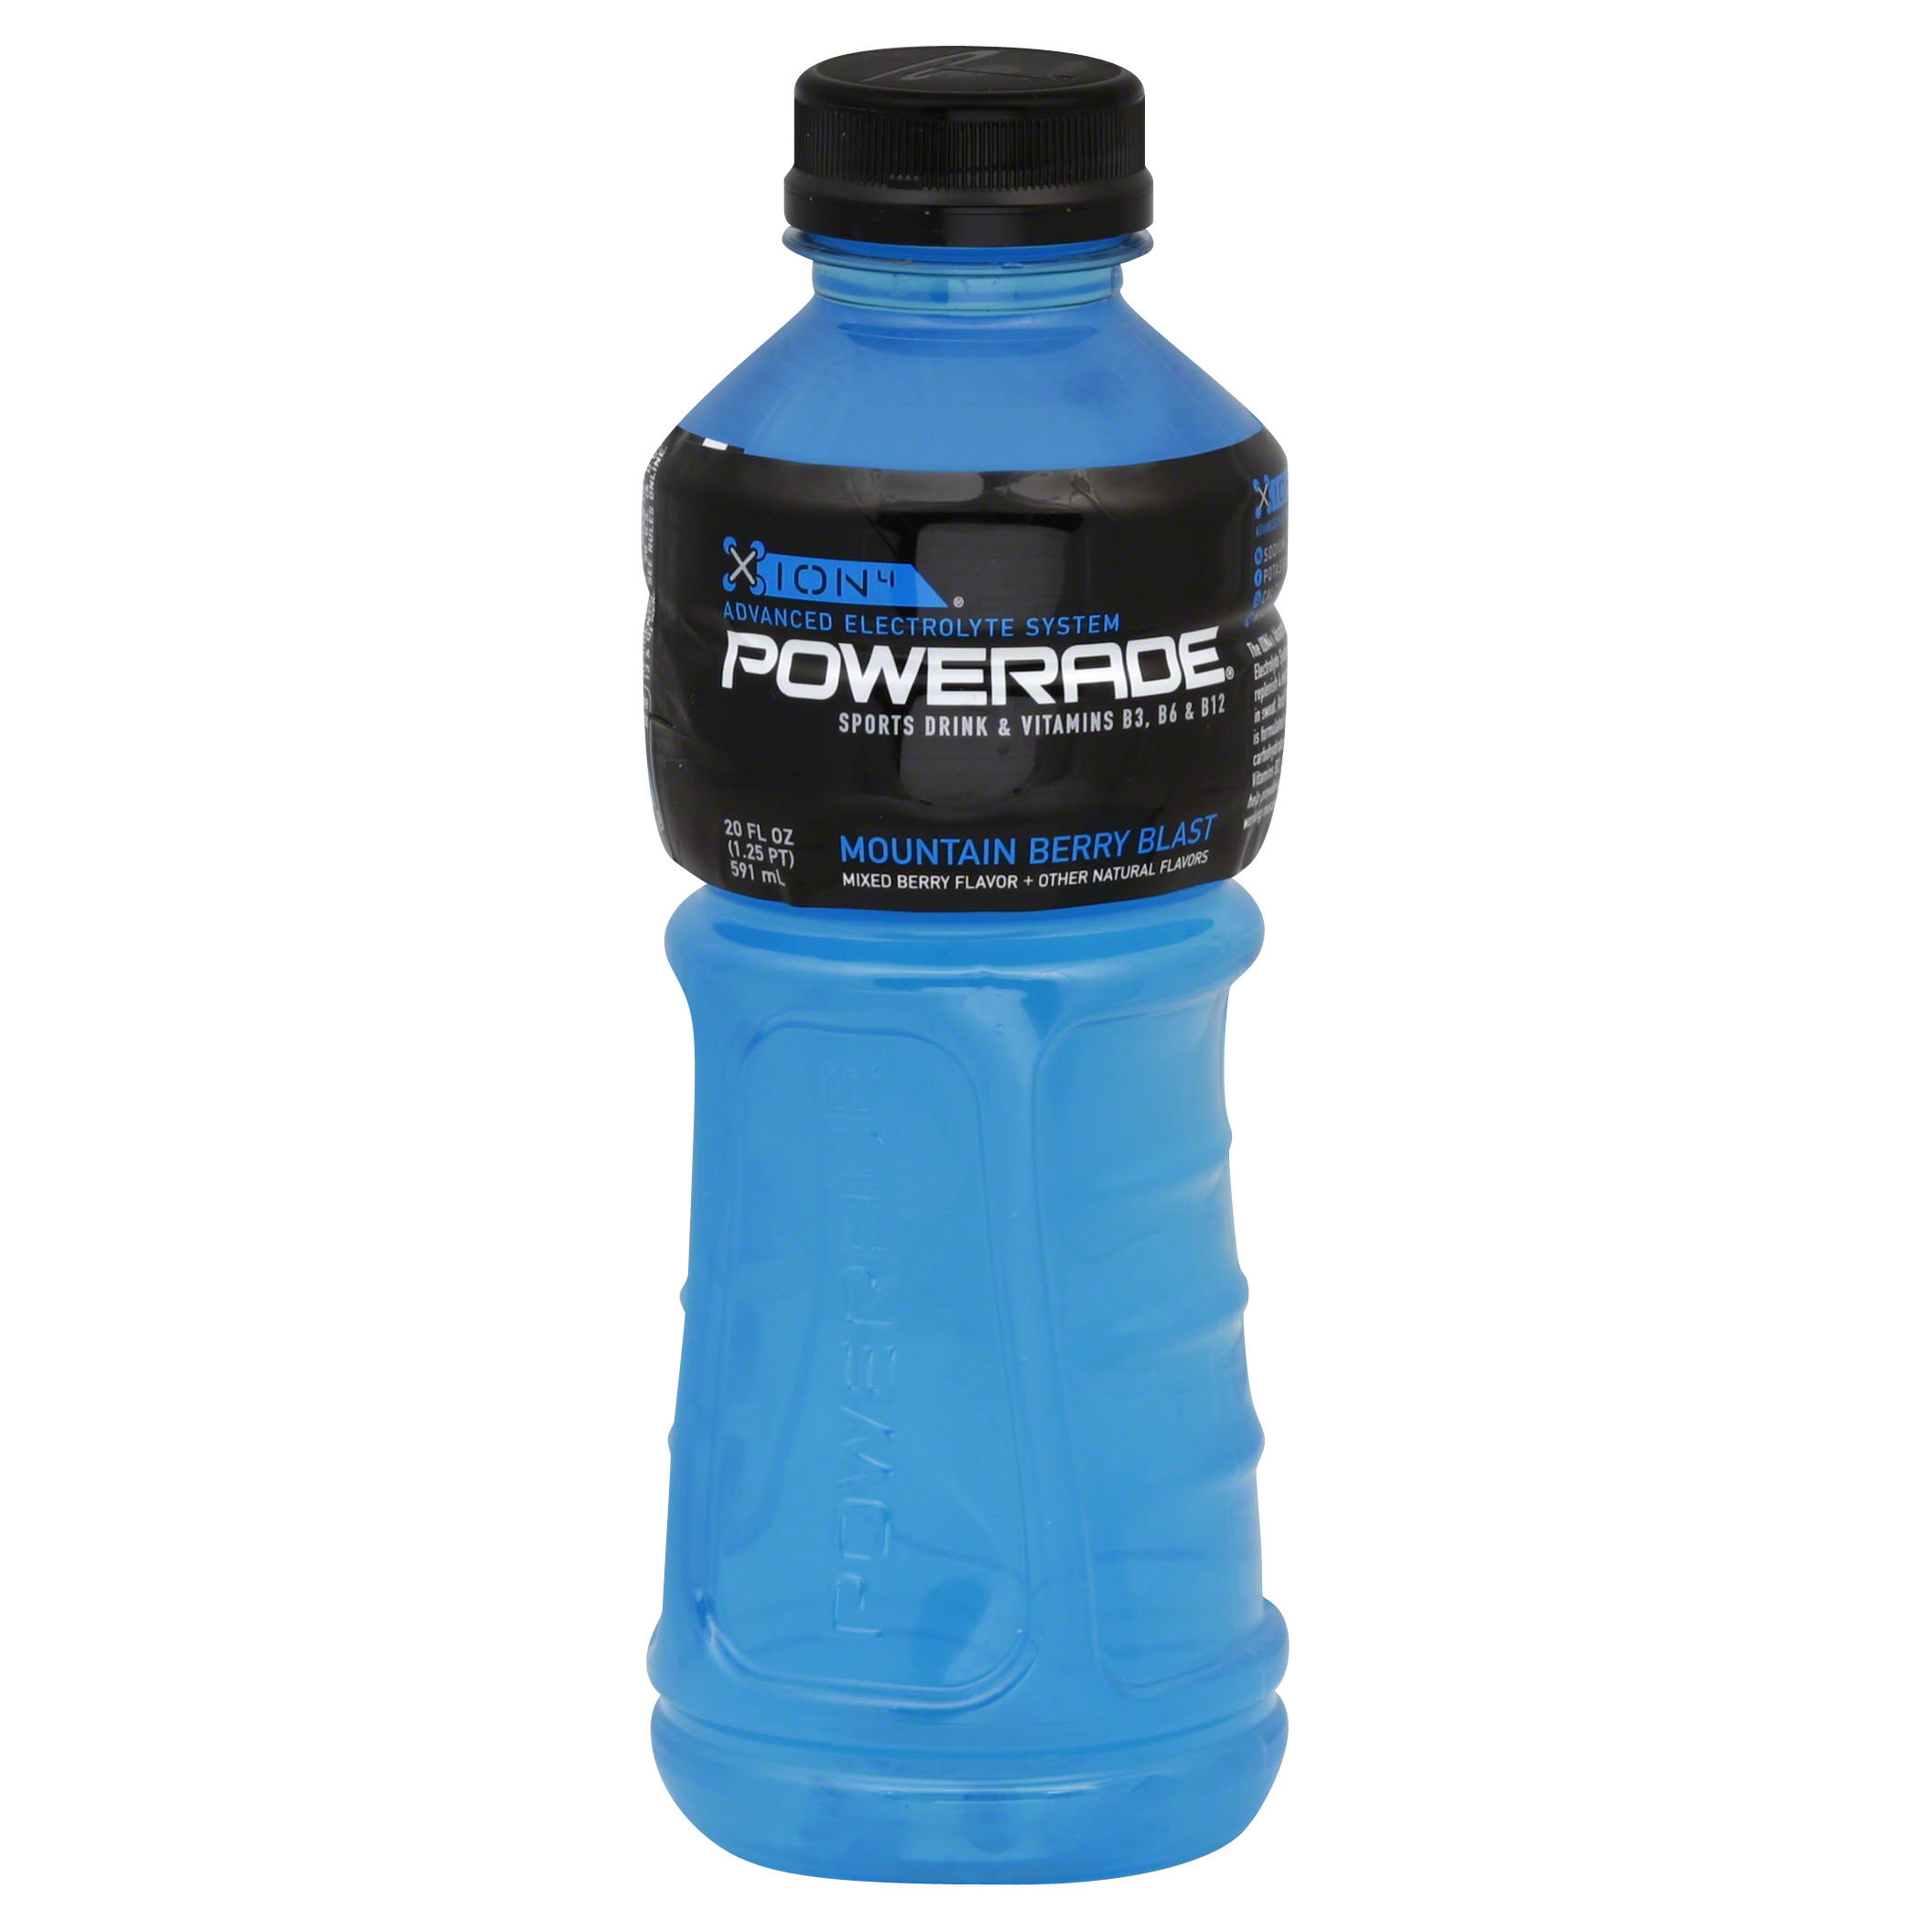 Powerade Ion4 Sports Drink - Mountain Berry Blast